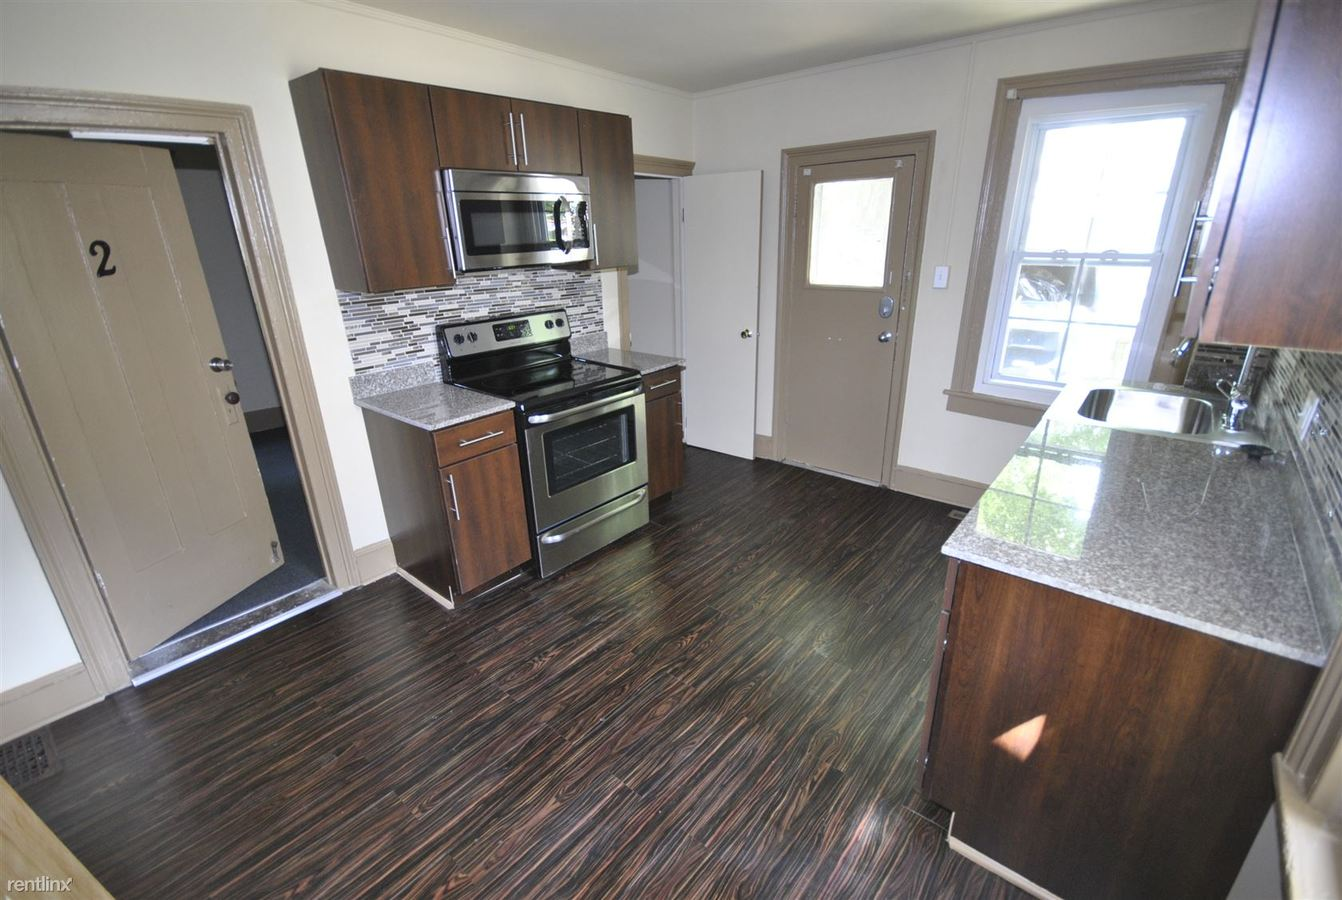 5 Bedrooms 3 Bathrooms House for rent at 541 S 4th Ave in Ann Arbor, MI